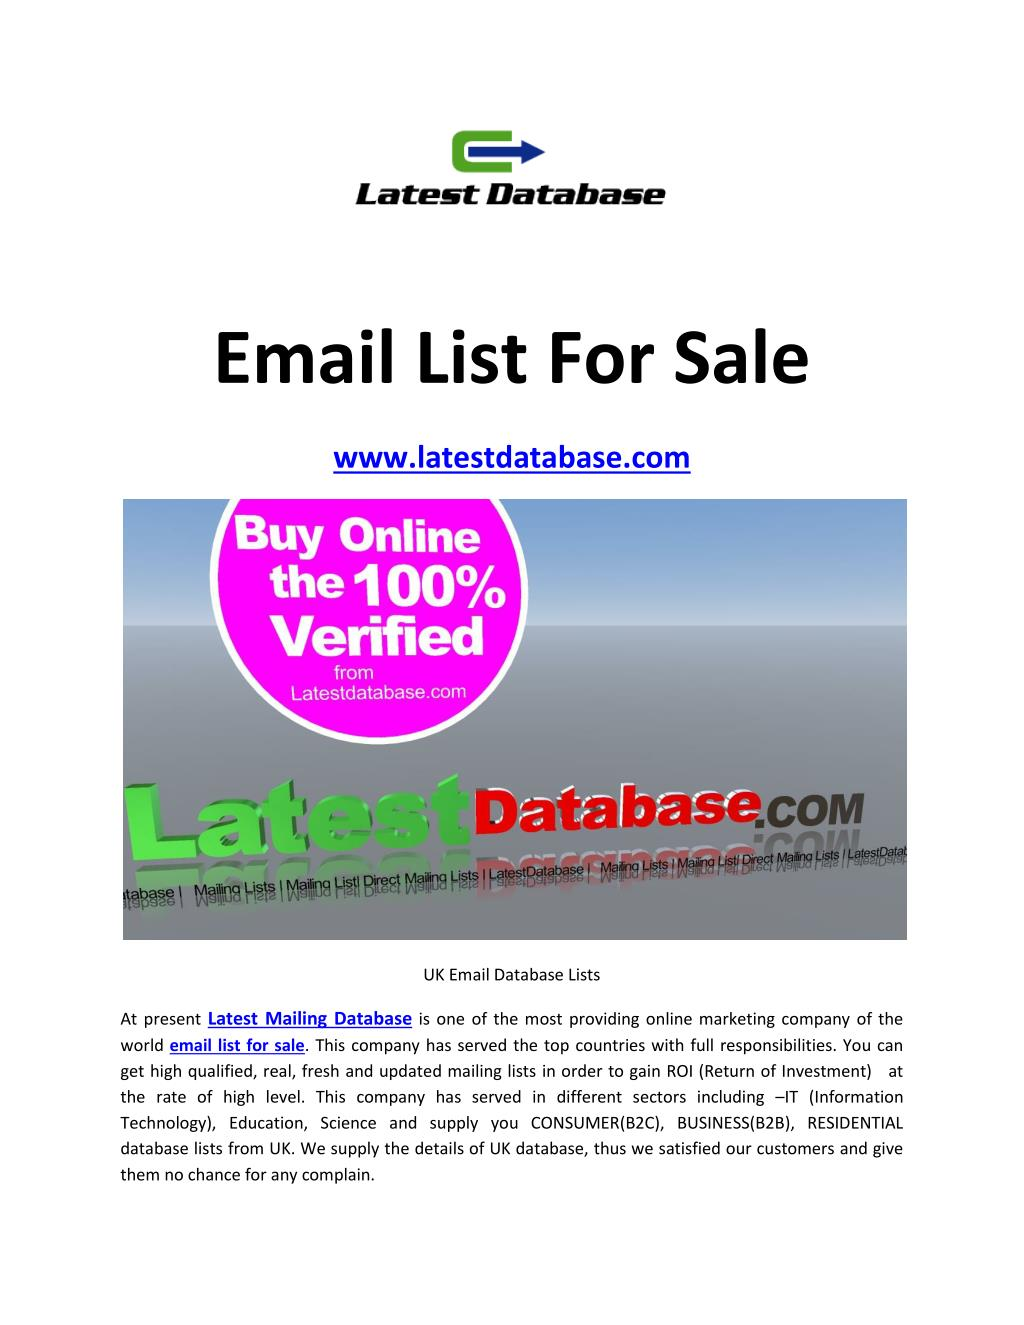 PPT - Email List For Sale PowerPoint Presentation - ID:7346795